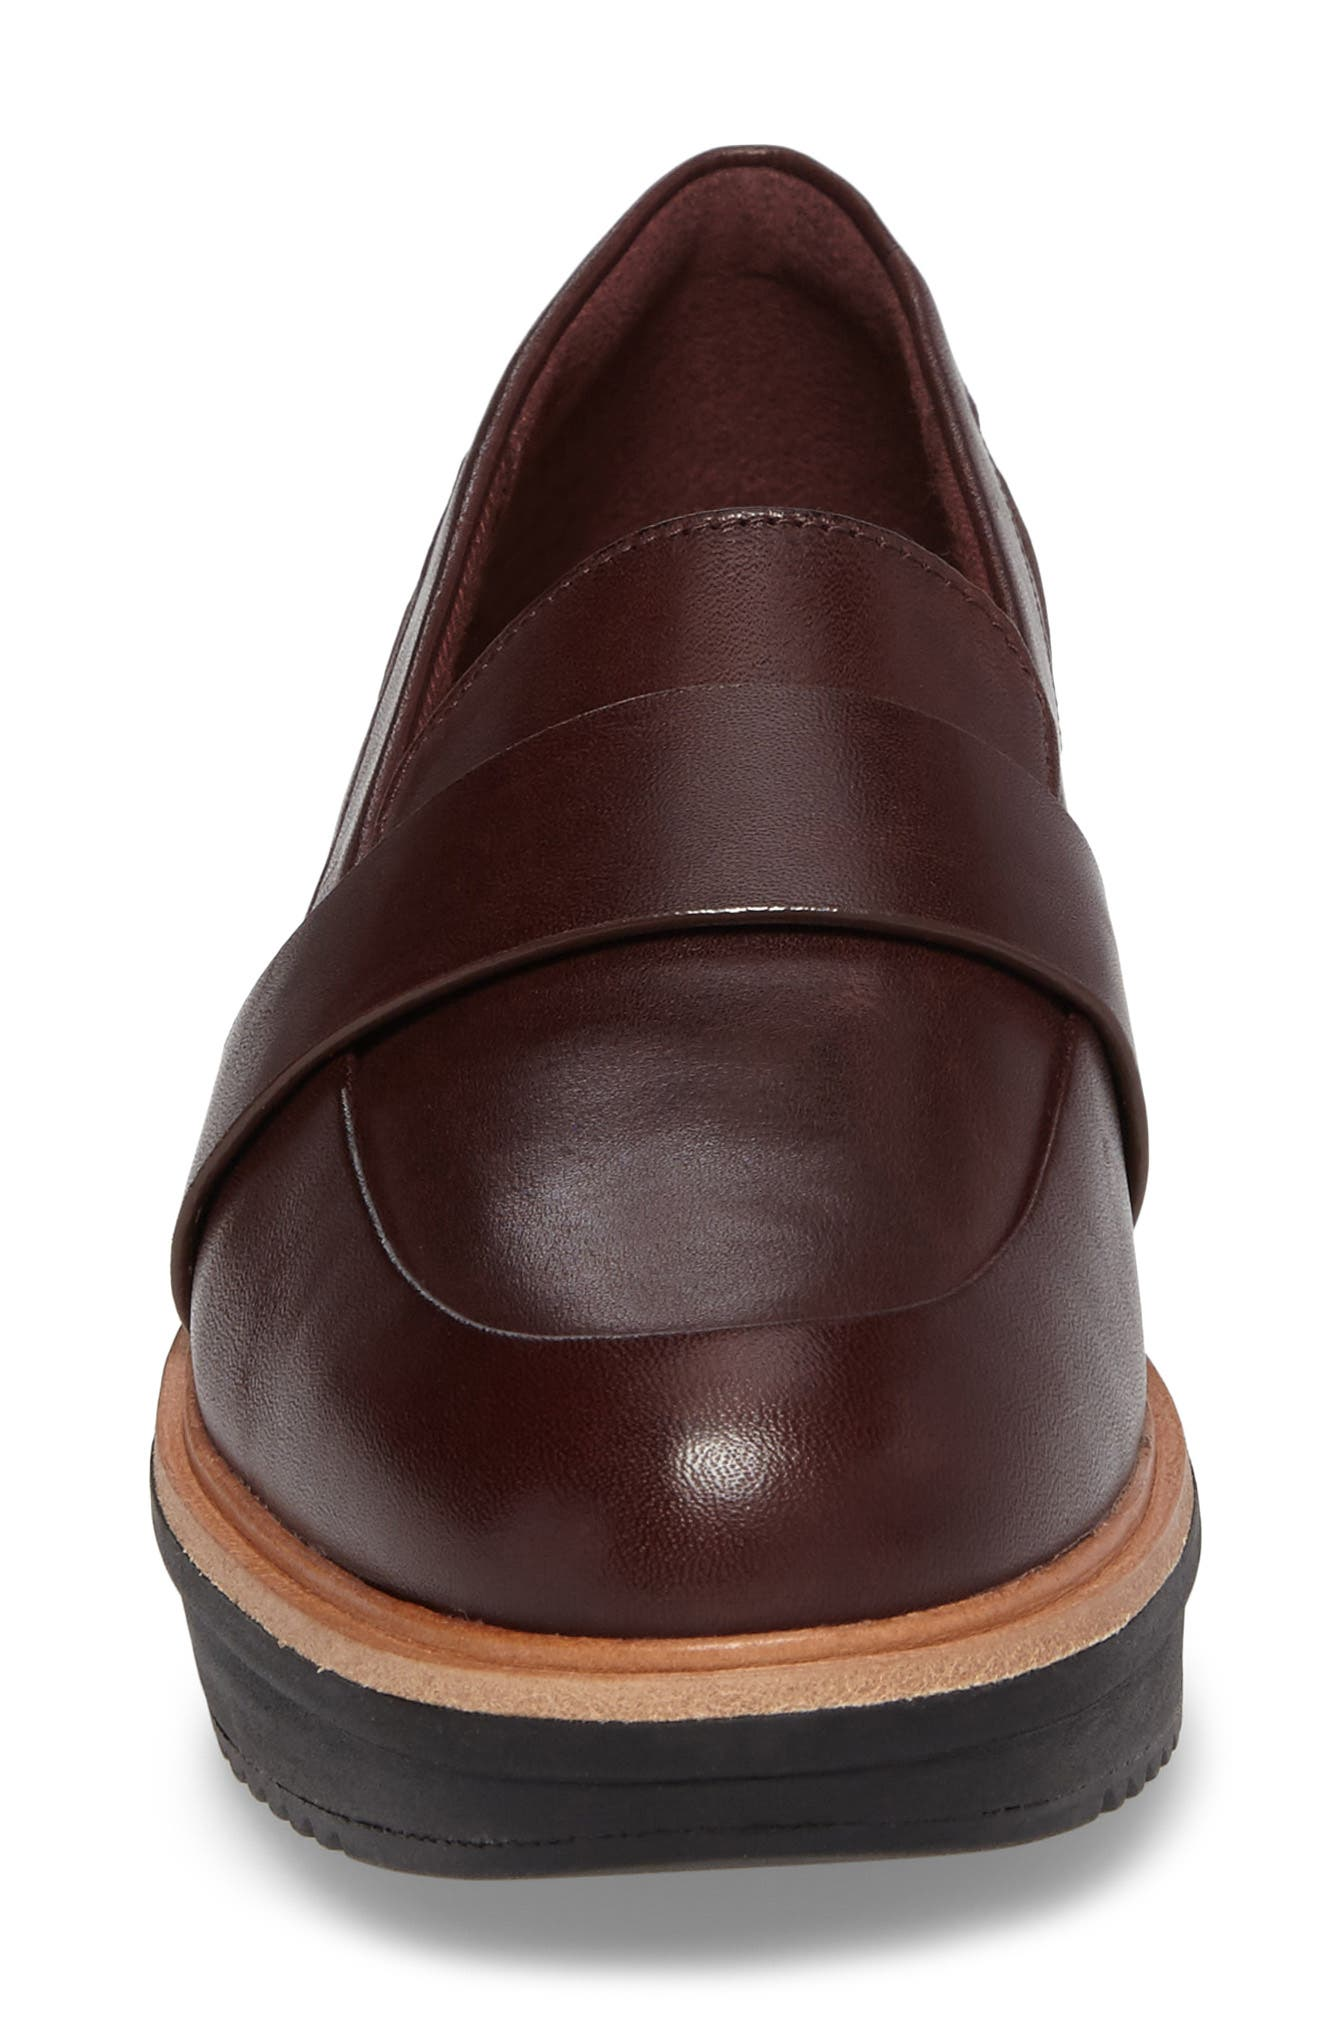 CLARKS<SUP>®</SUP>, Teadale Elsa Loafer, Alternate thumbnail 4, color, BURGUNDY LEATHER